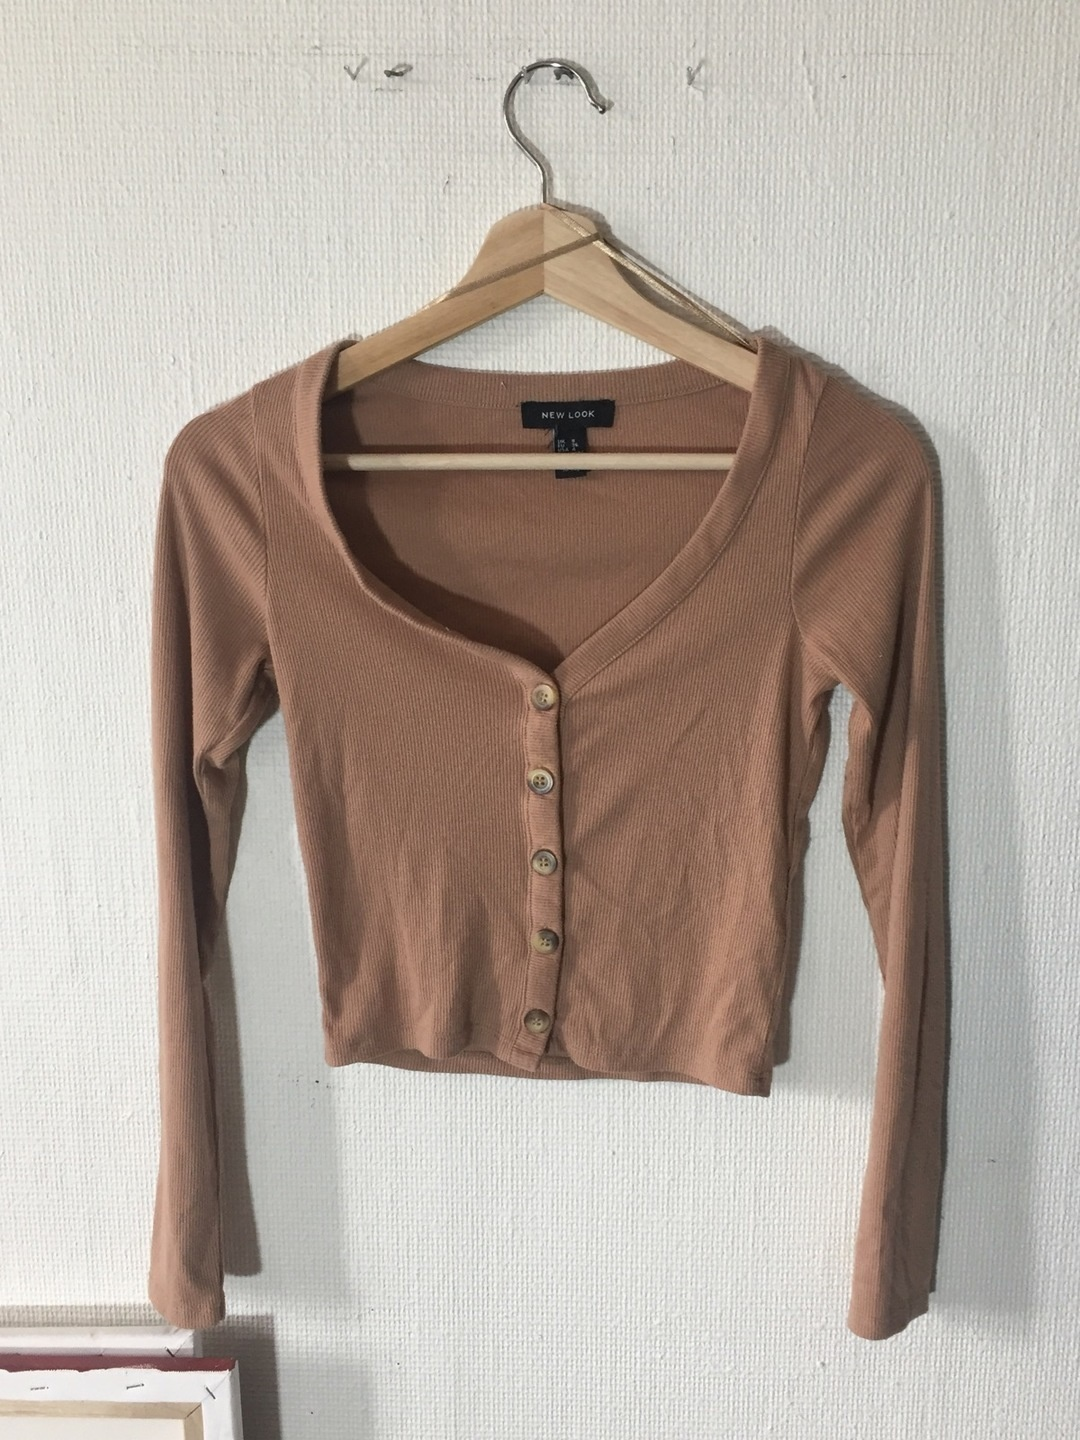 Women's tops & t-shirts - NEW LOOK photo 2